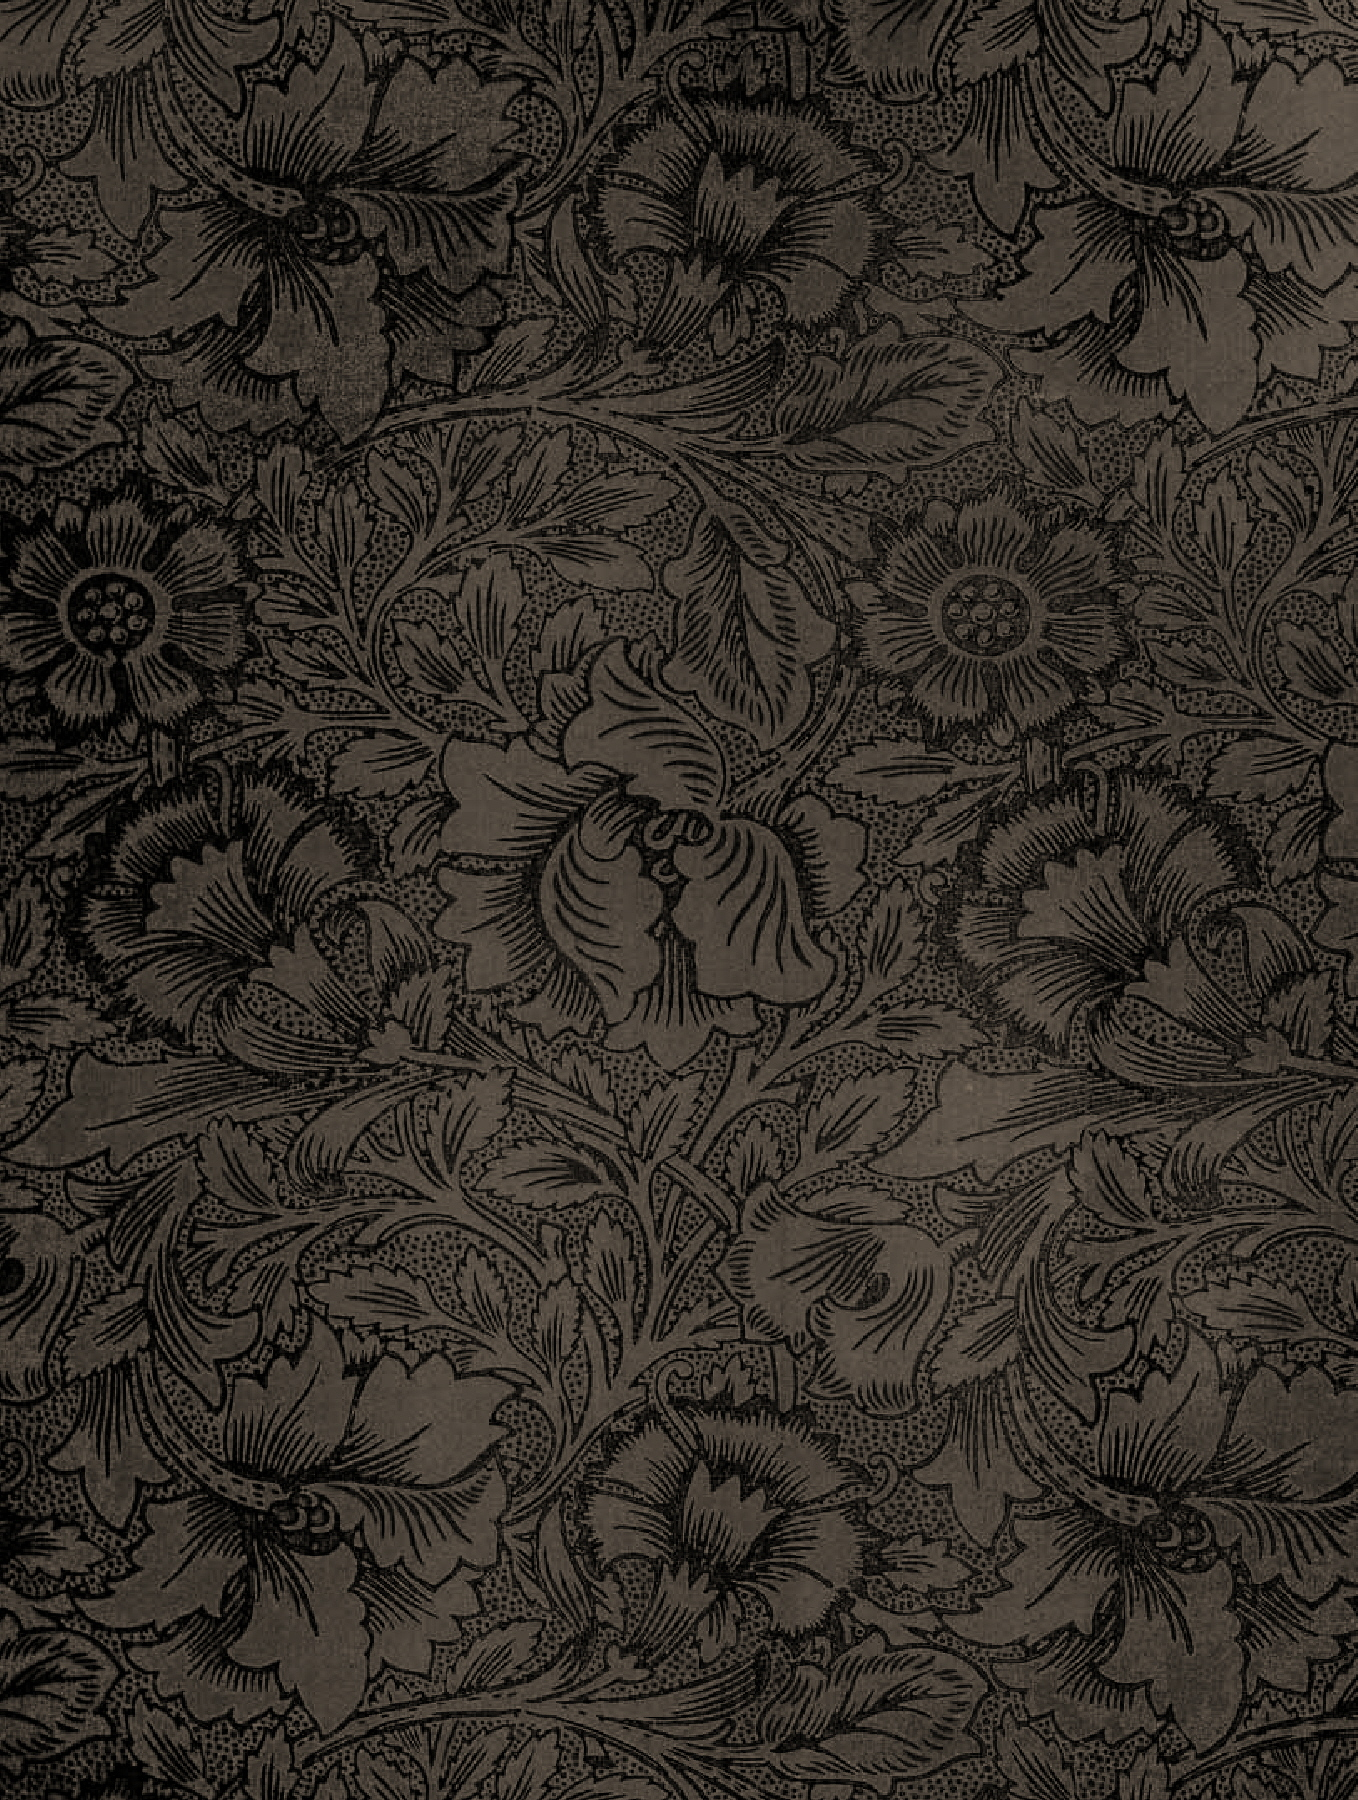 Vintage Wall Paper Texture by MGB Stock on DeviantArt